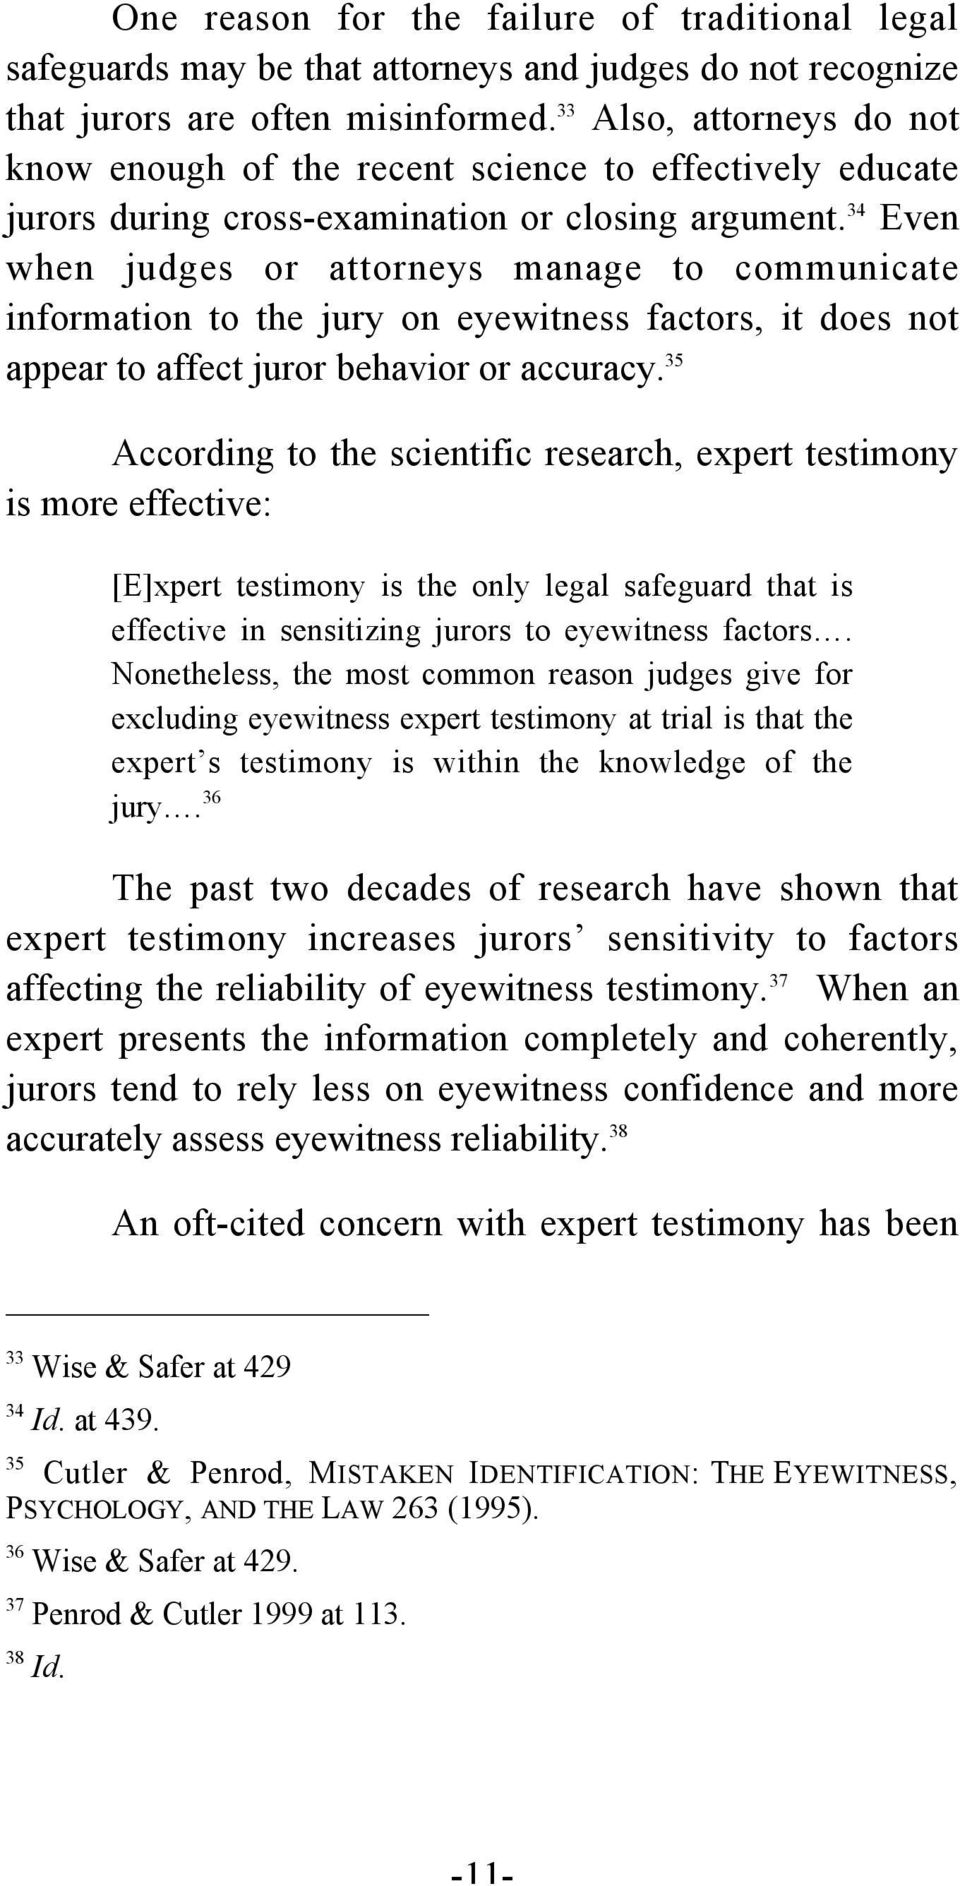 34 Even when judges or attorneys manage to communicate information to the jury on eyewitness factors, it does not appear to affect juror behavior or accuracy.